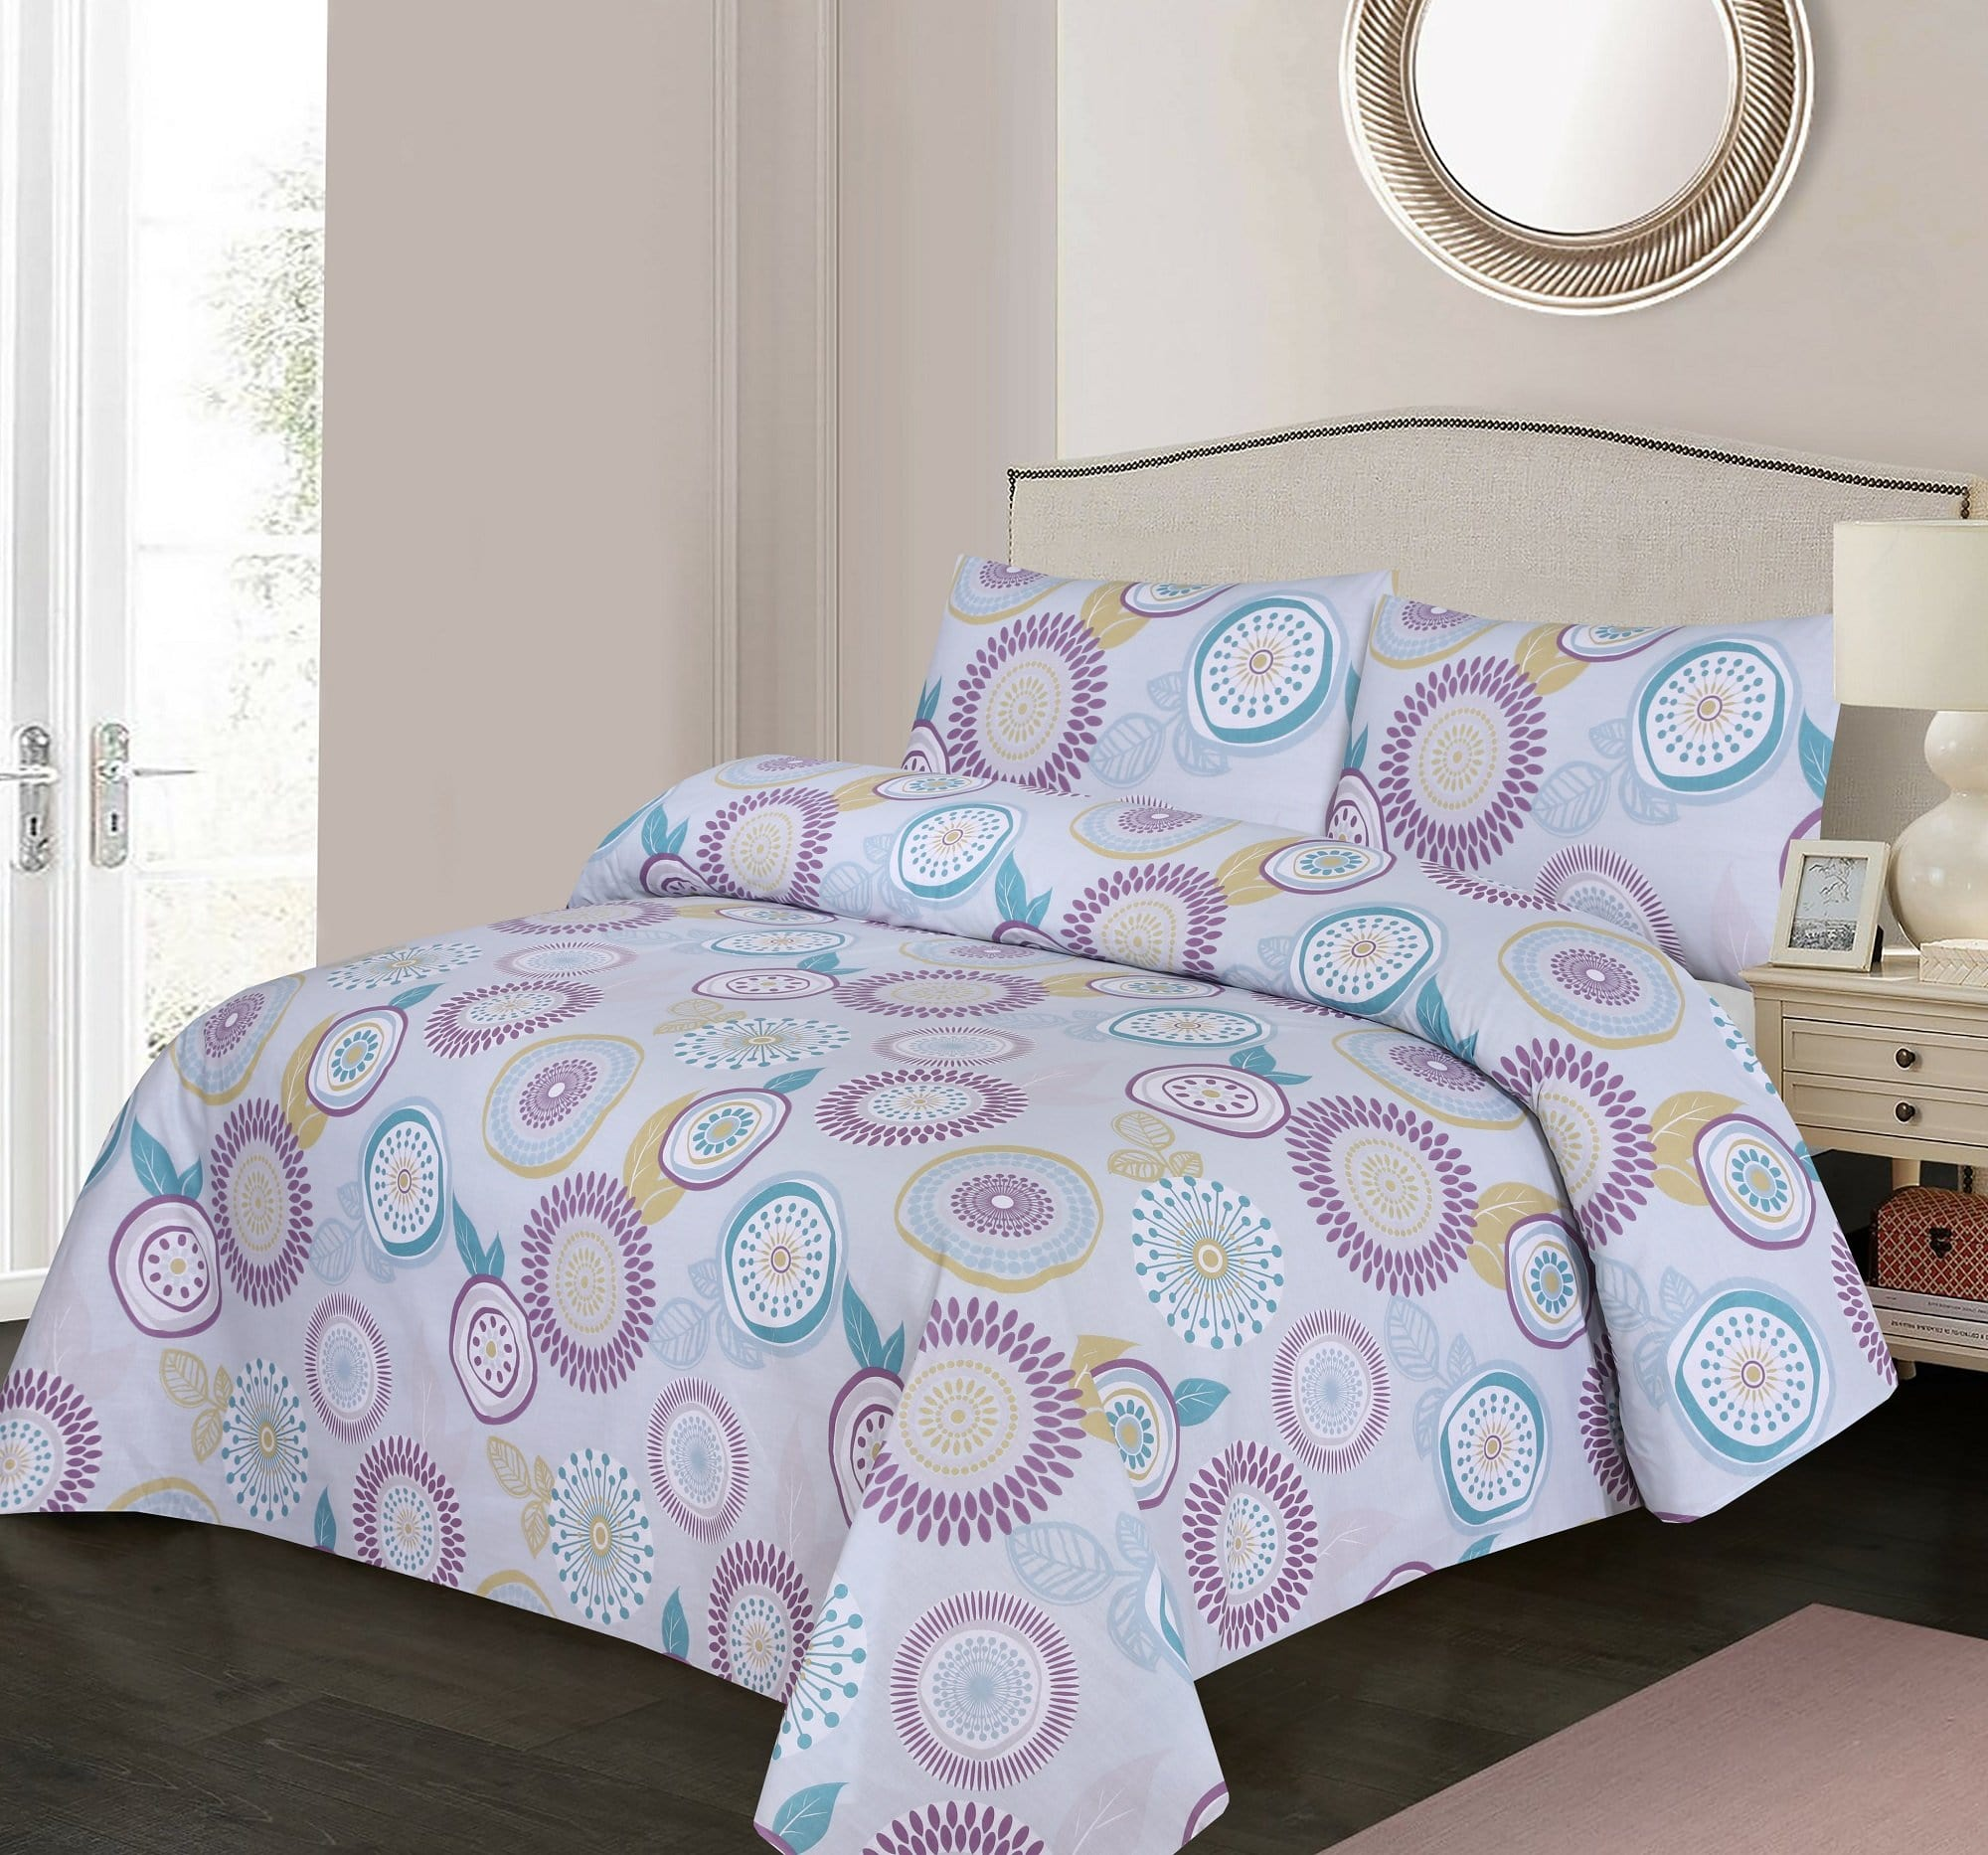 Grace D404-Cotton PC King Size Bedsheet with 2 Pillow Covers.